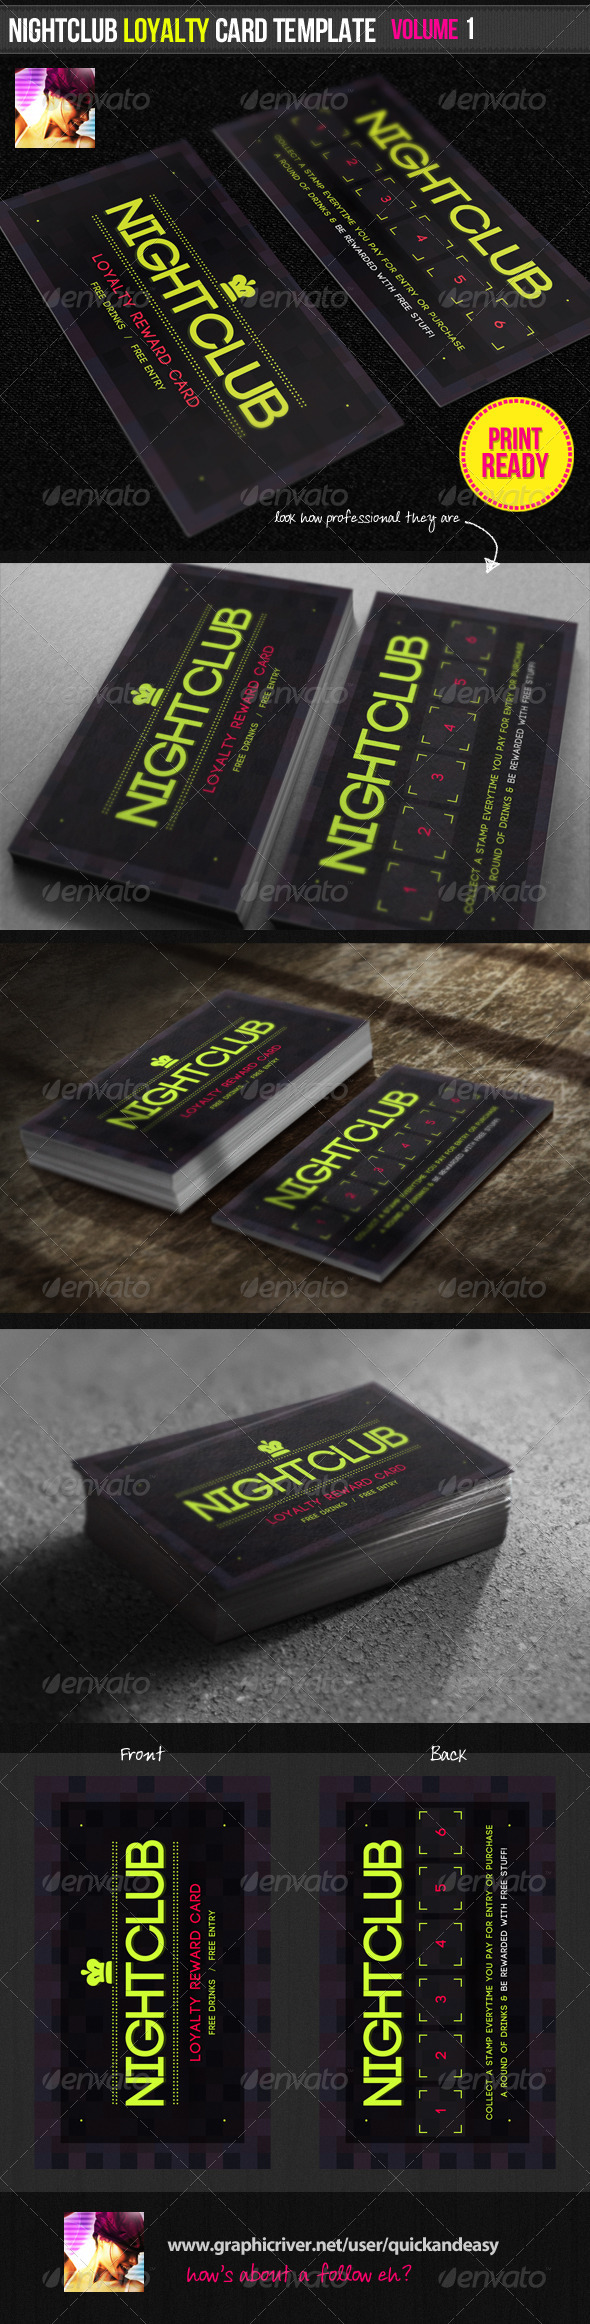 Nightclub Loyalty Card Template - Loyalty Cards Cards & Invites